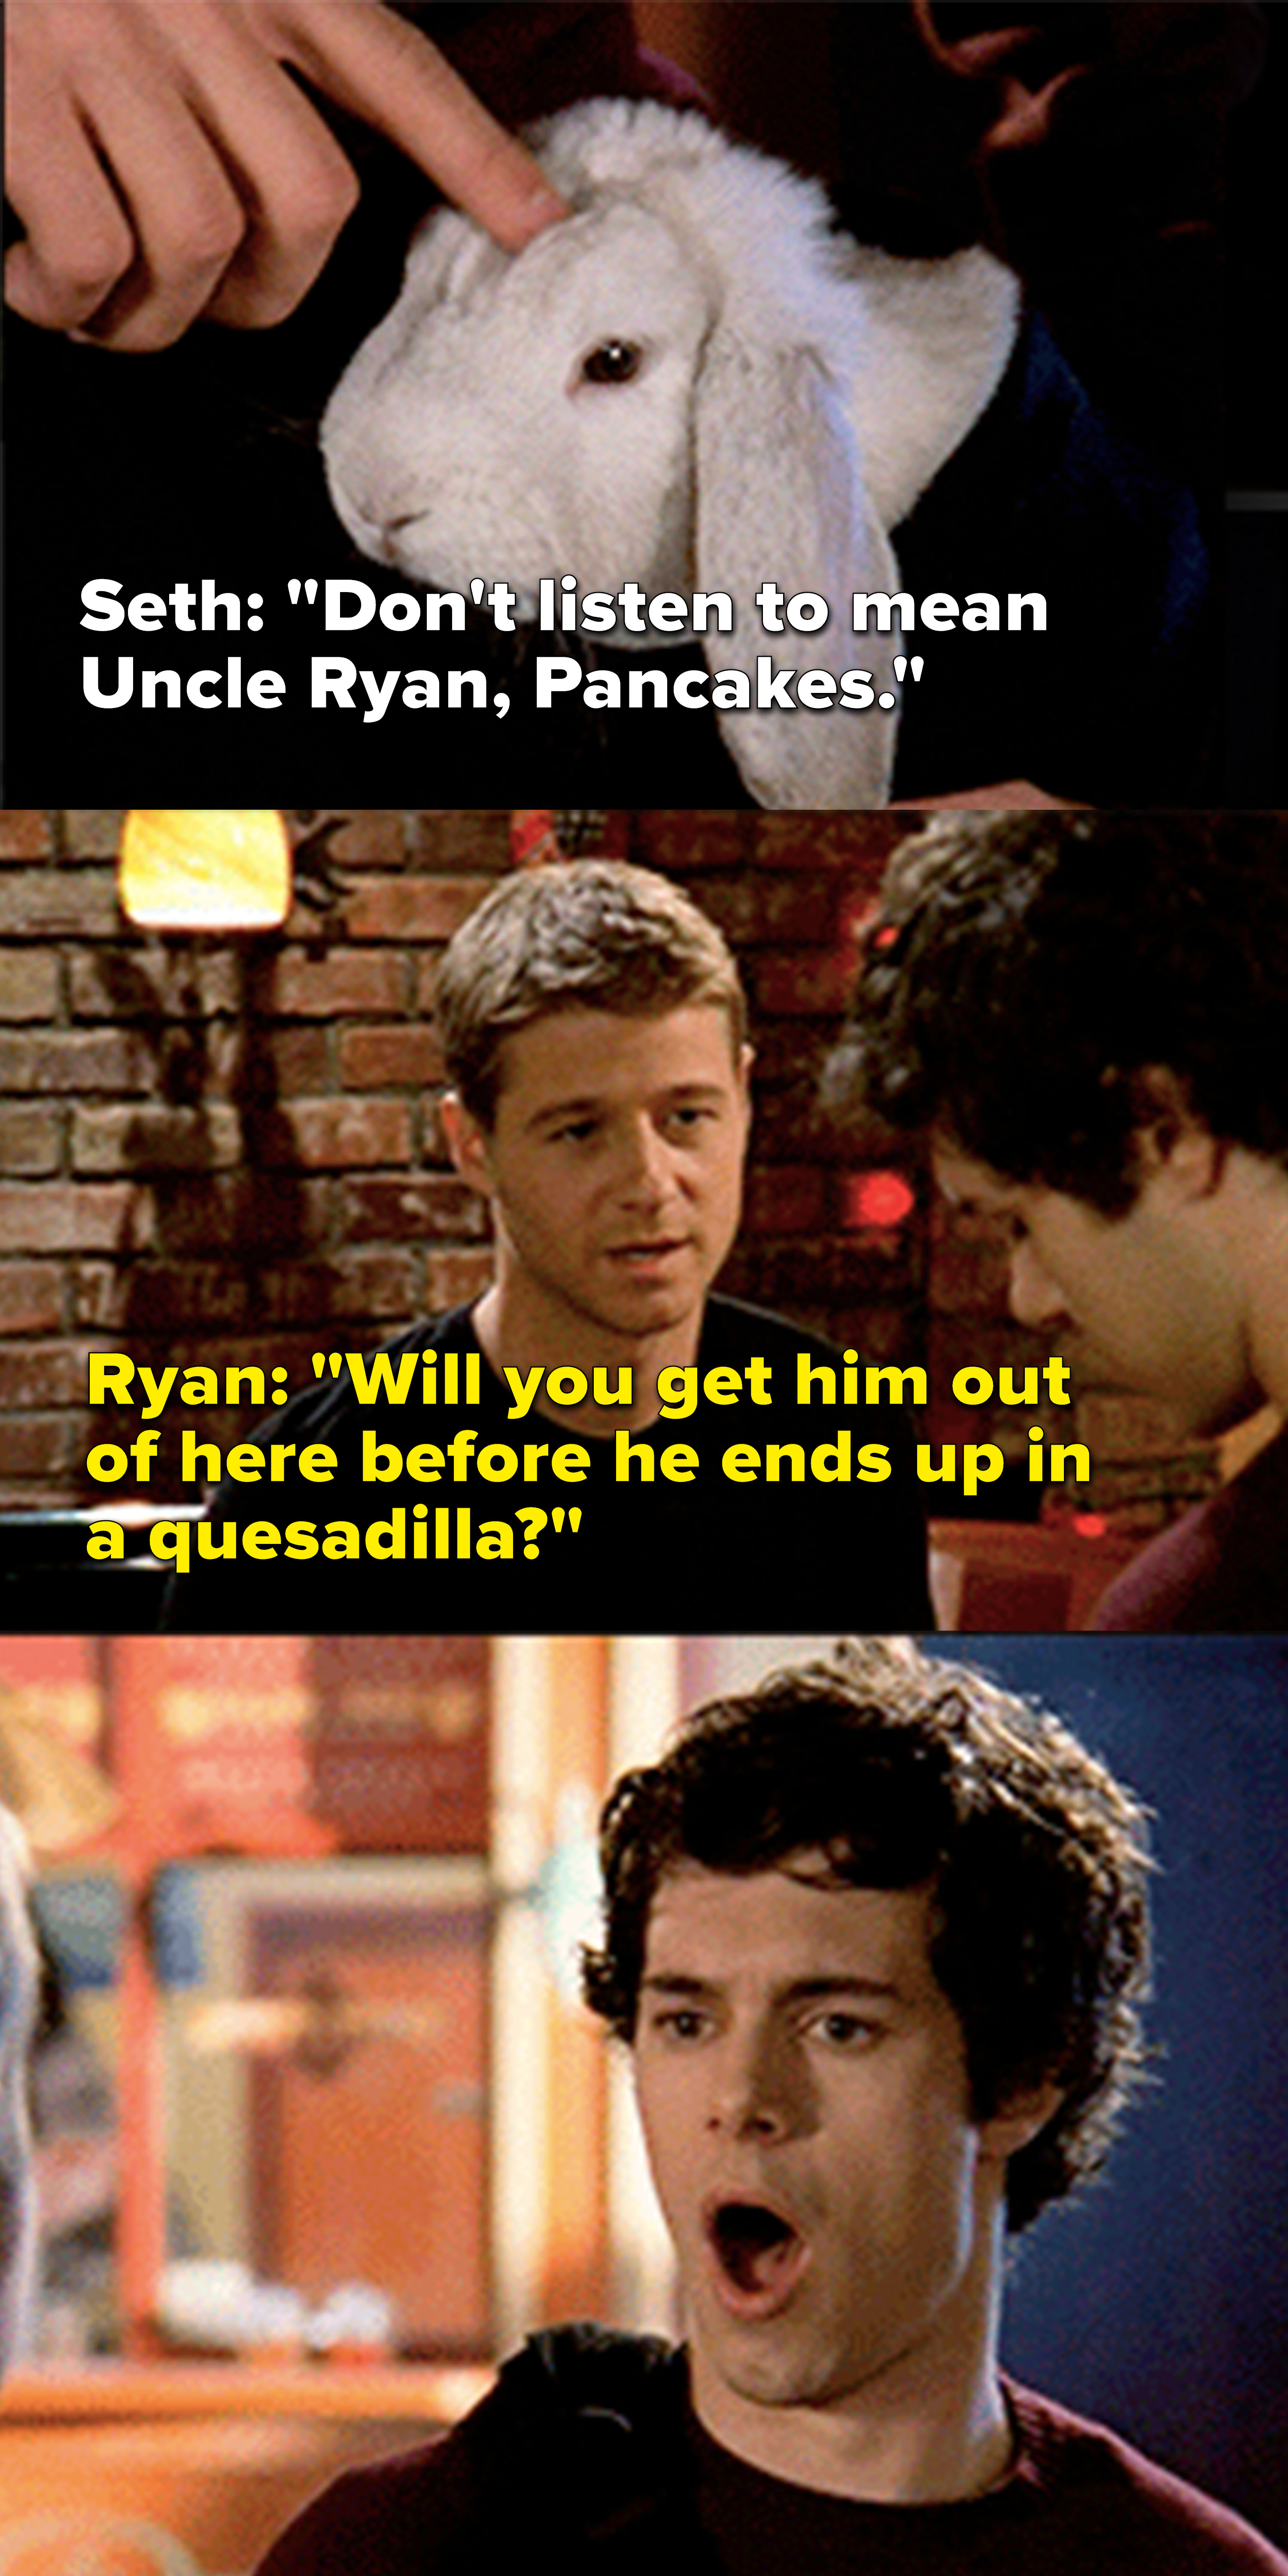 Ryan tells Seth to get Summer's pet bunny out of there before he ends up in a quesadilla